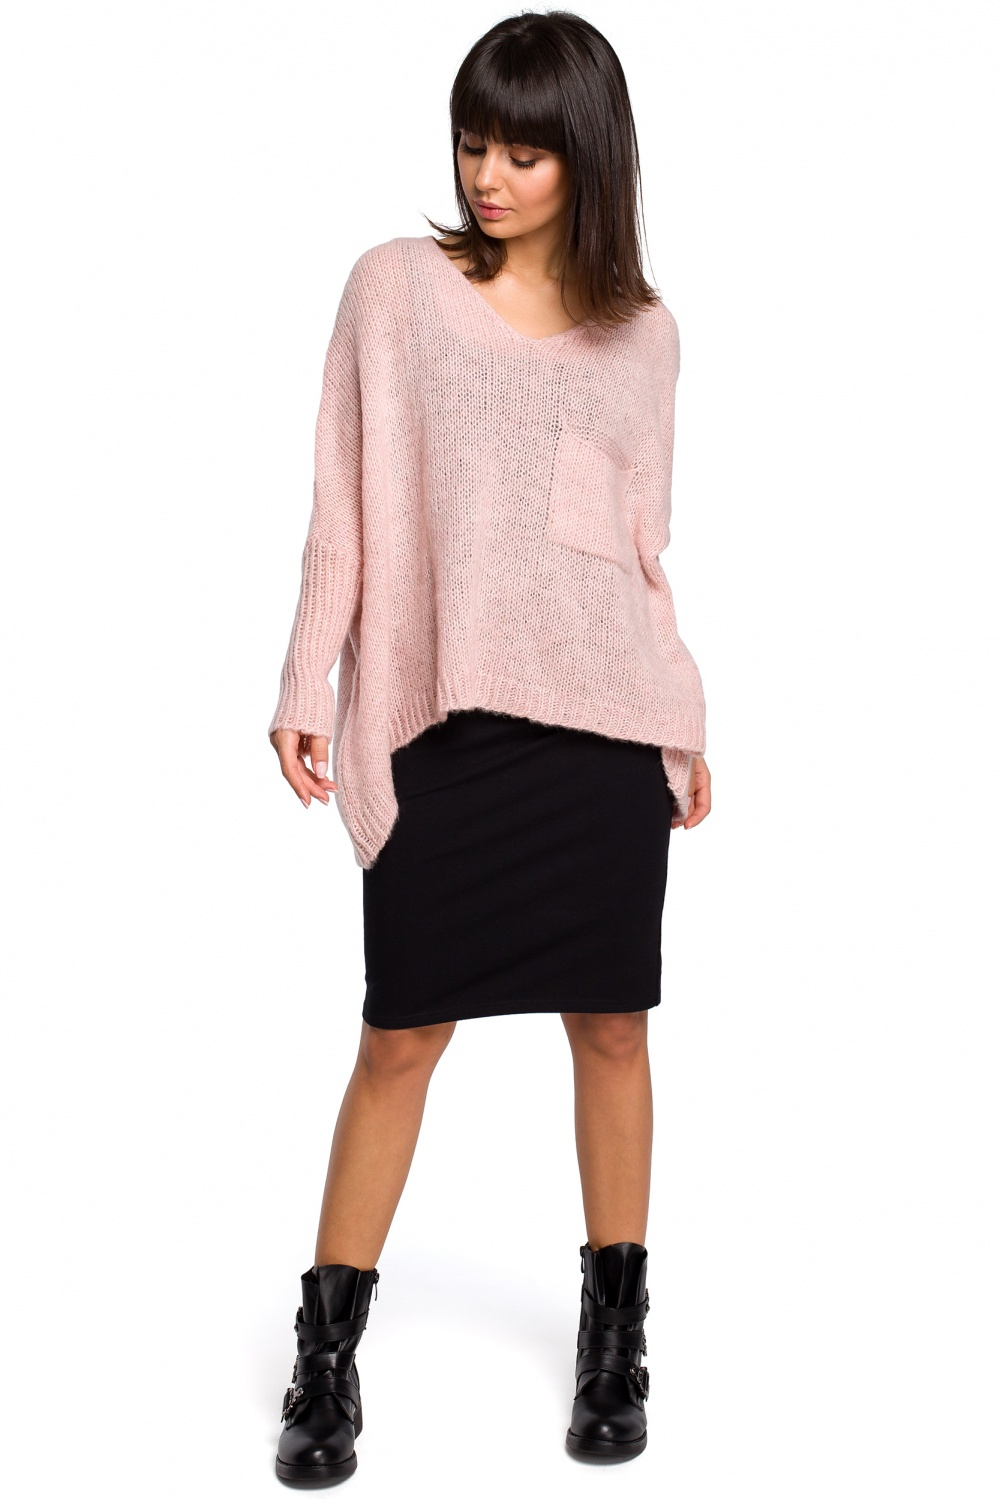 Pulover model 129169 BE Knit